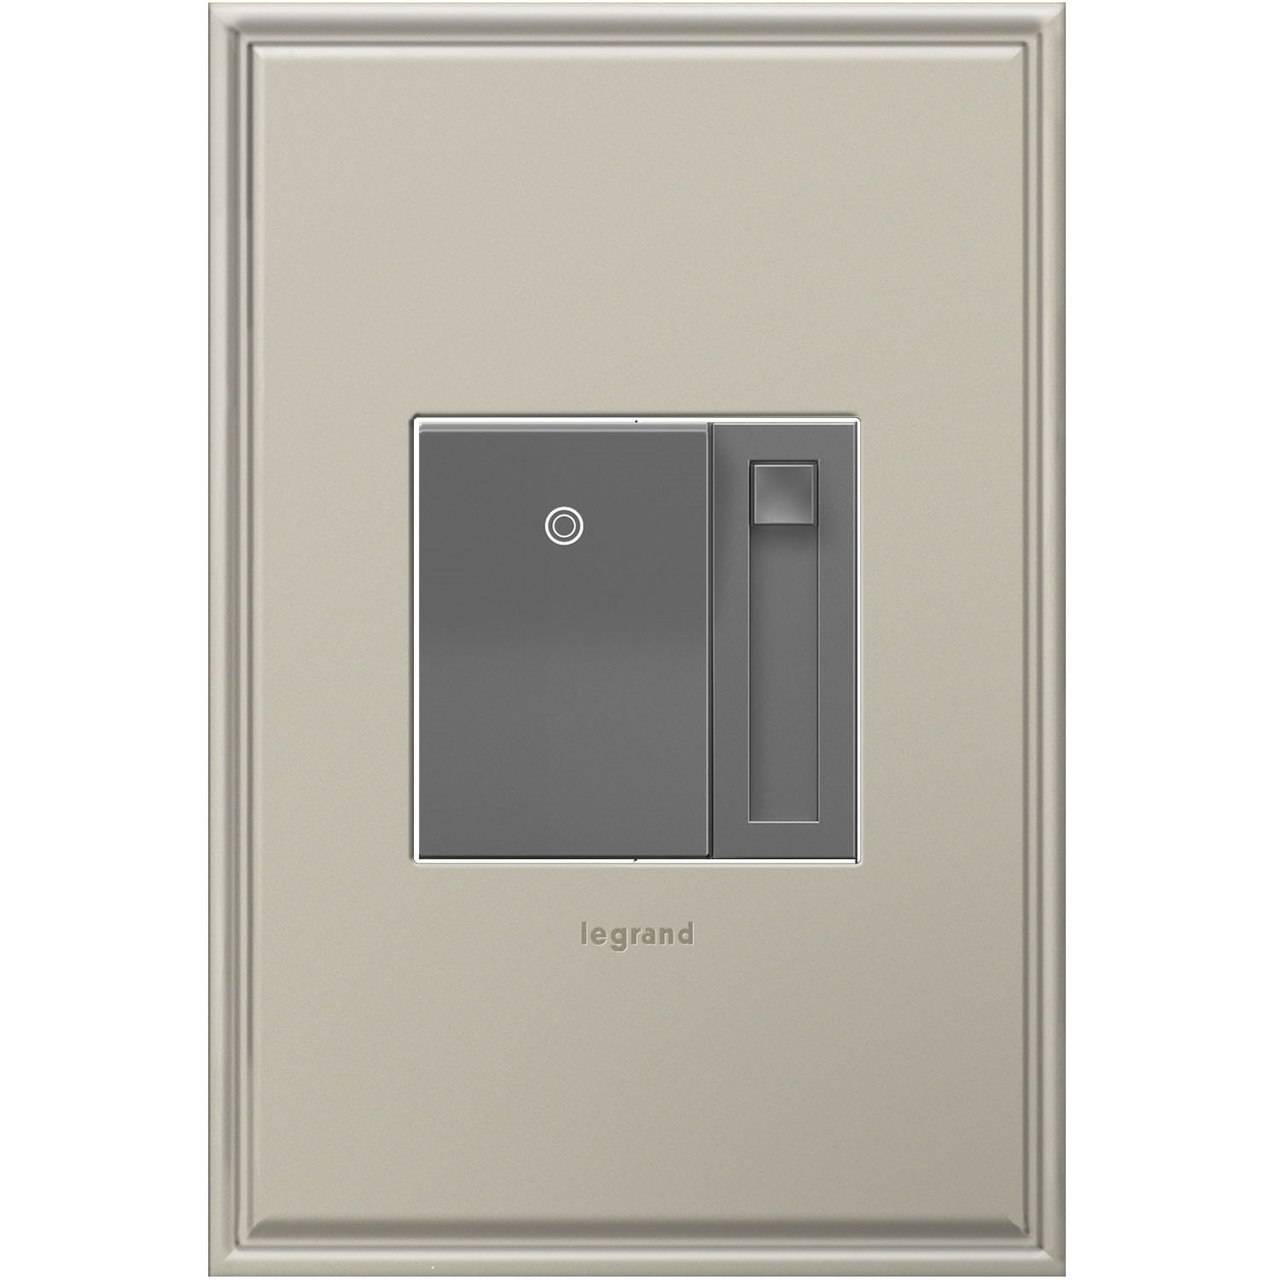 Legrand adorne  paddle dimmer incandescent and halogen clissic dimmer switch